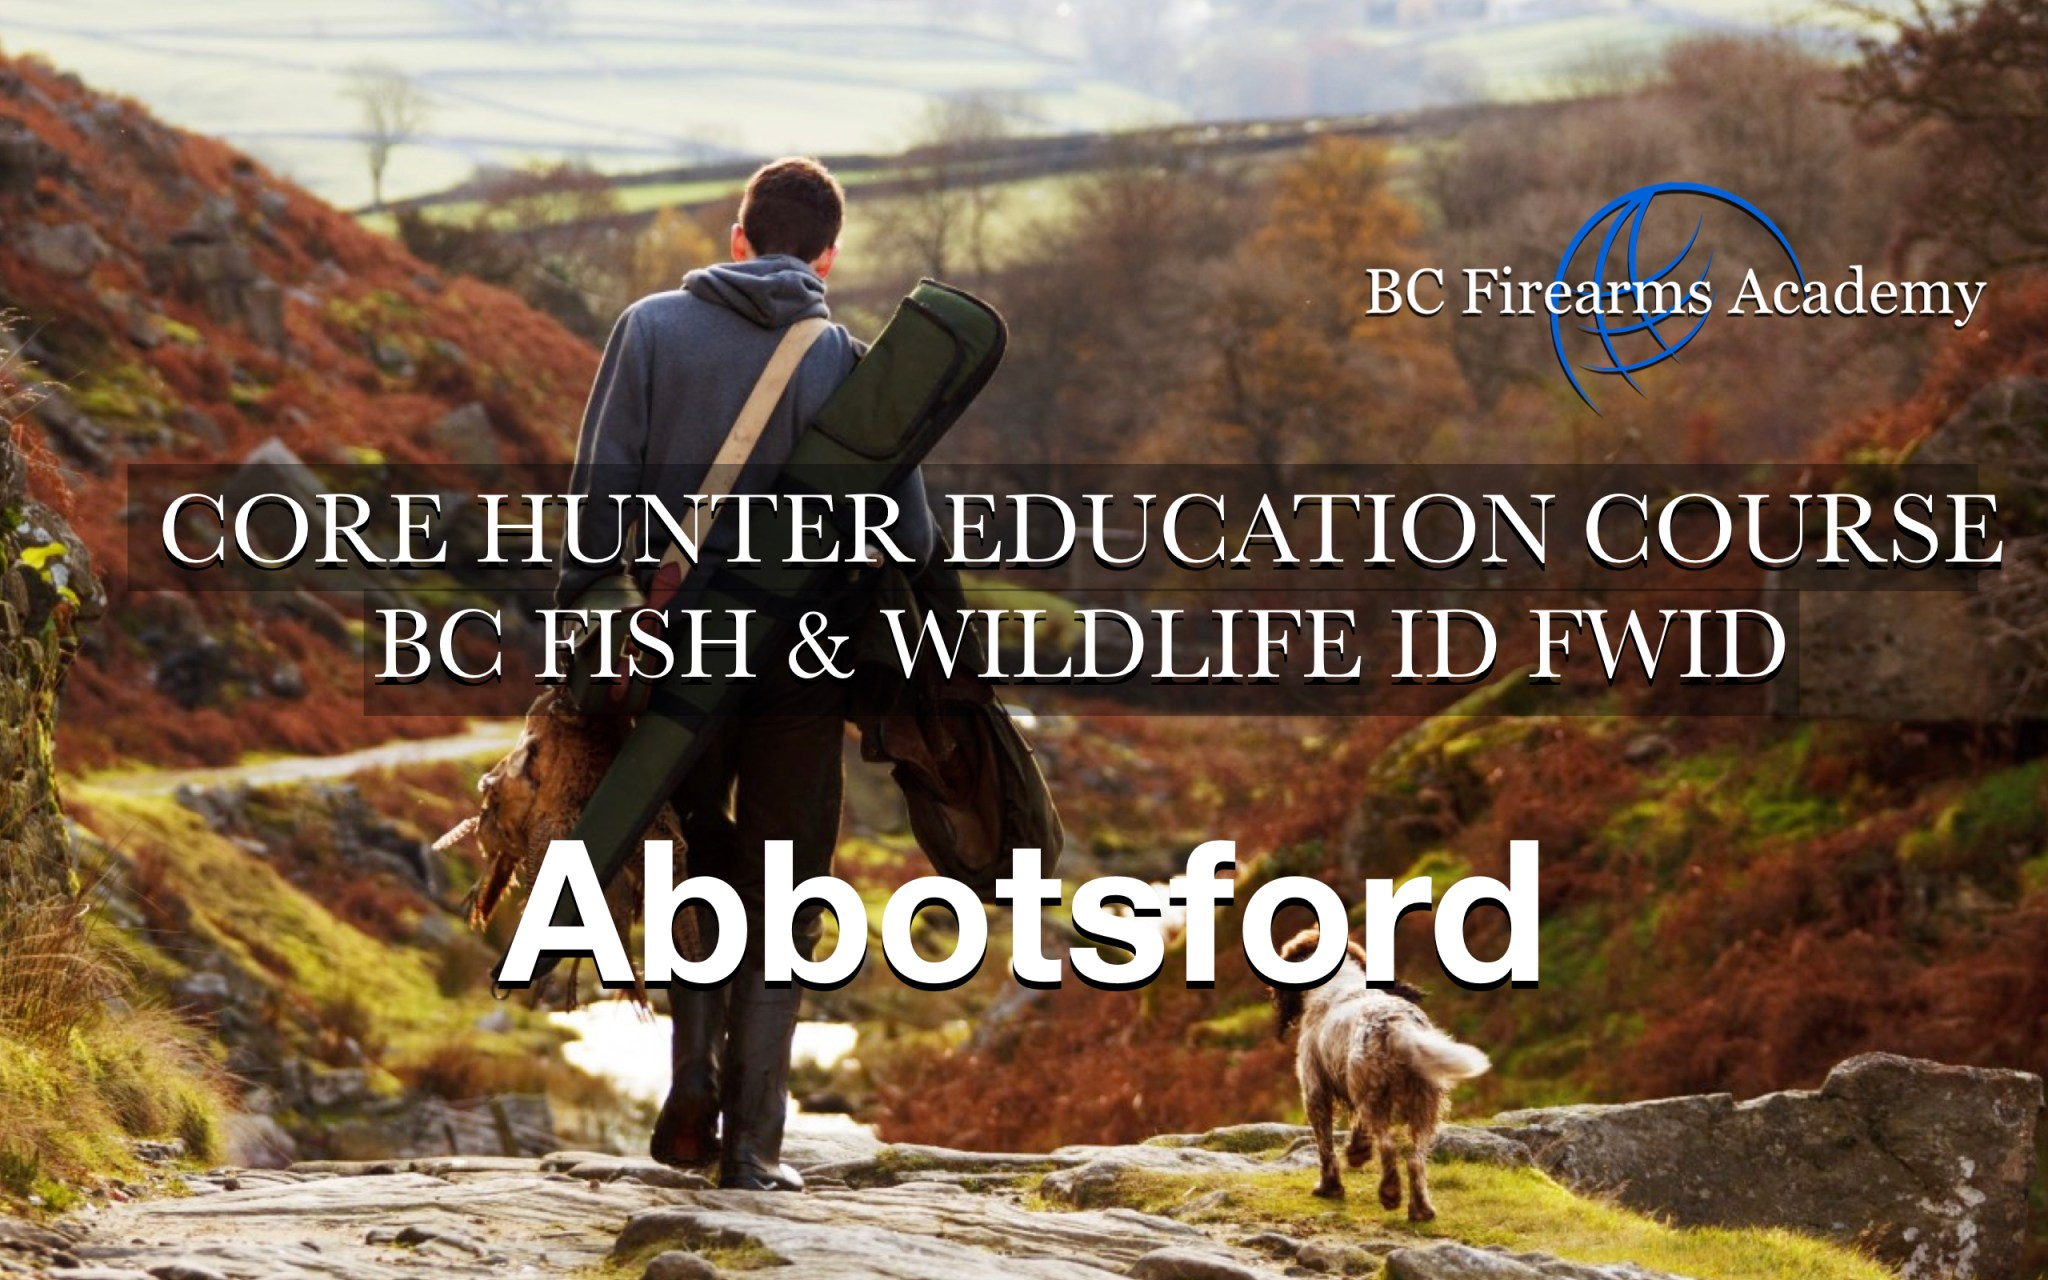 CORE Hunter Education Course BC Fish & Wildlife ID FWID Abbotsford Thurs-Fri Sept 26-27